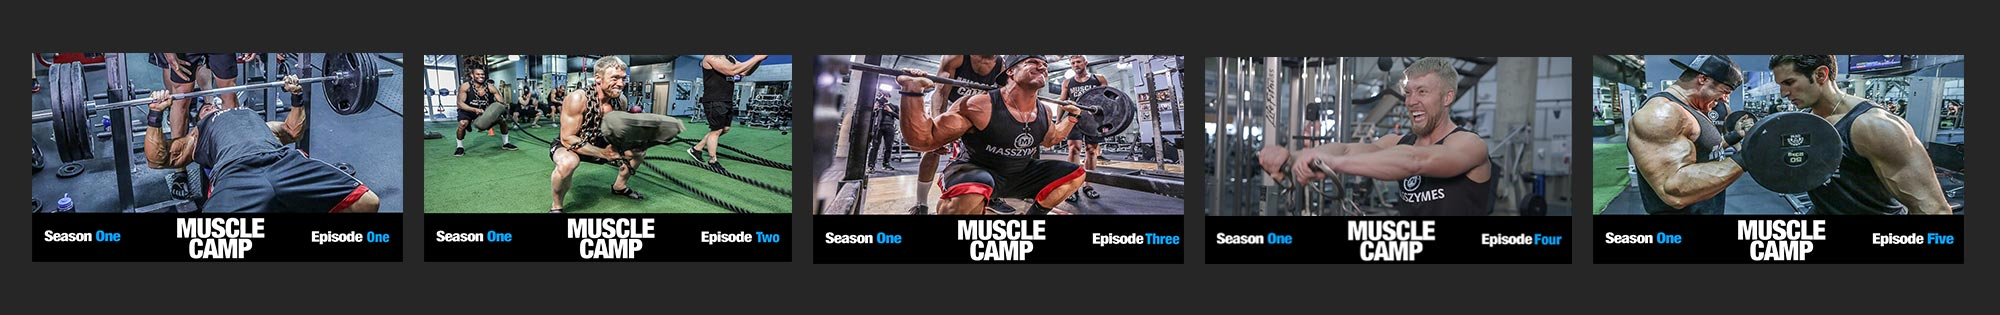 Muscle Camp TV Episodes